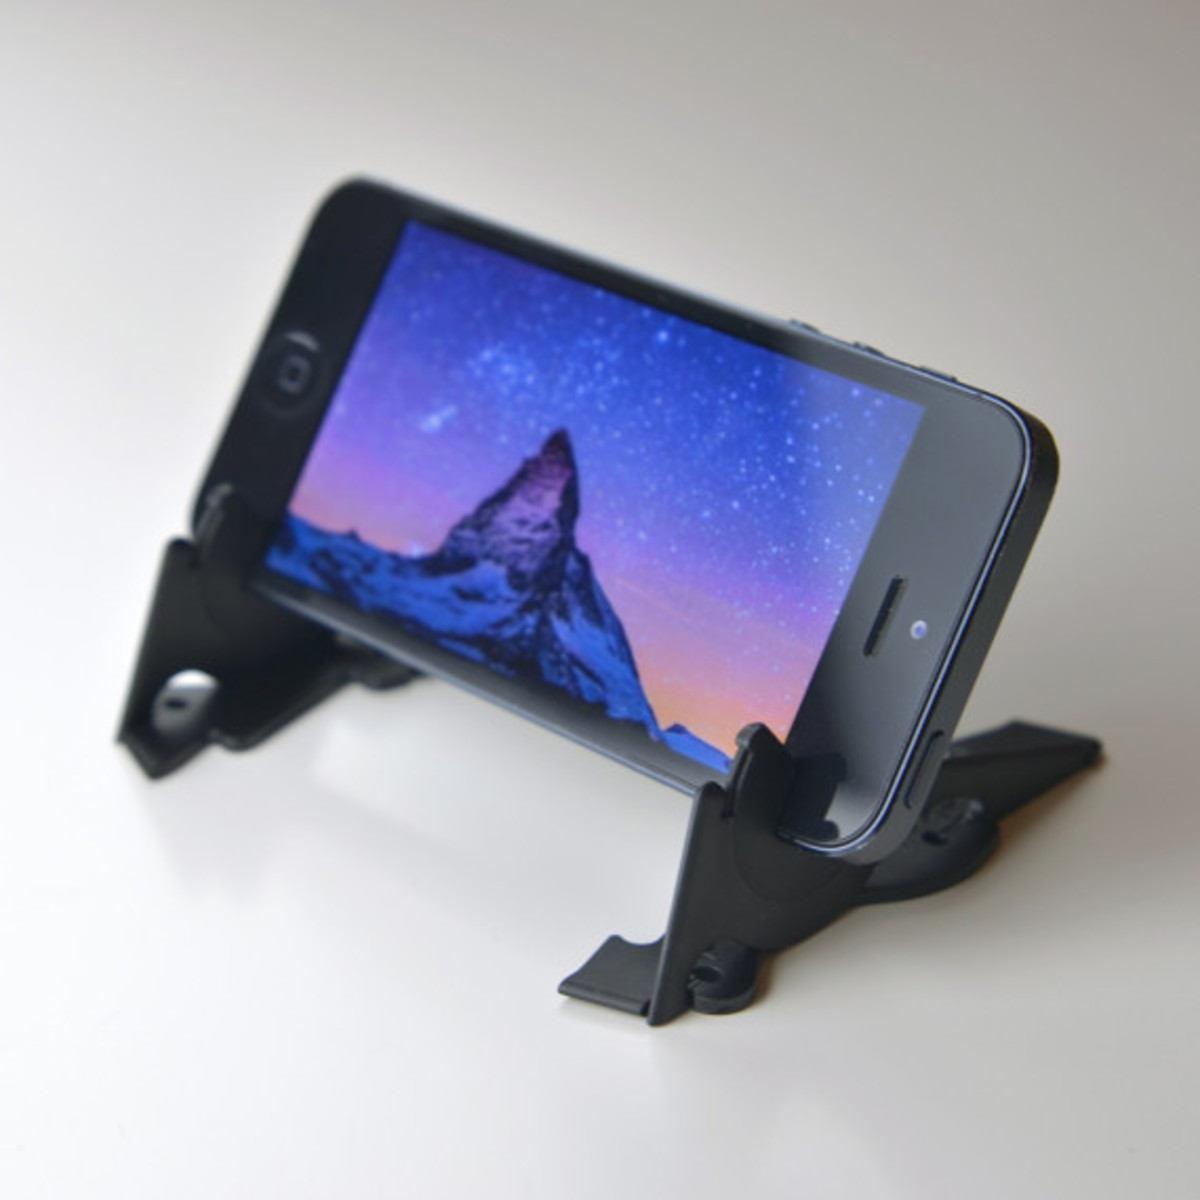 Pocket Tripod - Wallet-Sized Adjustable Stand for Apple iPhone - 3